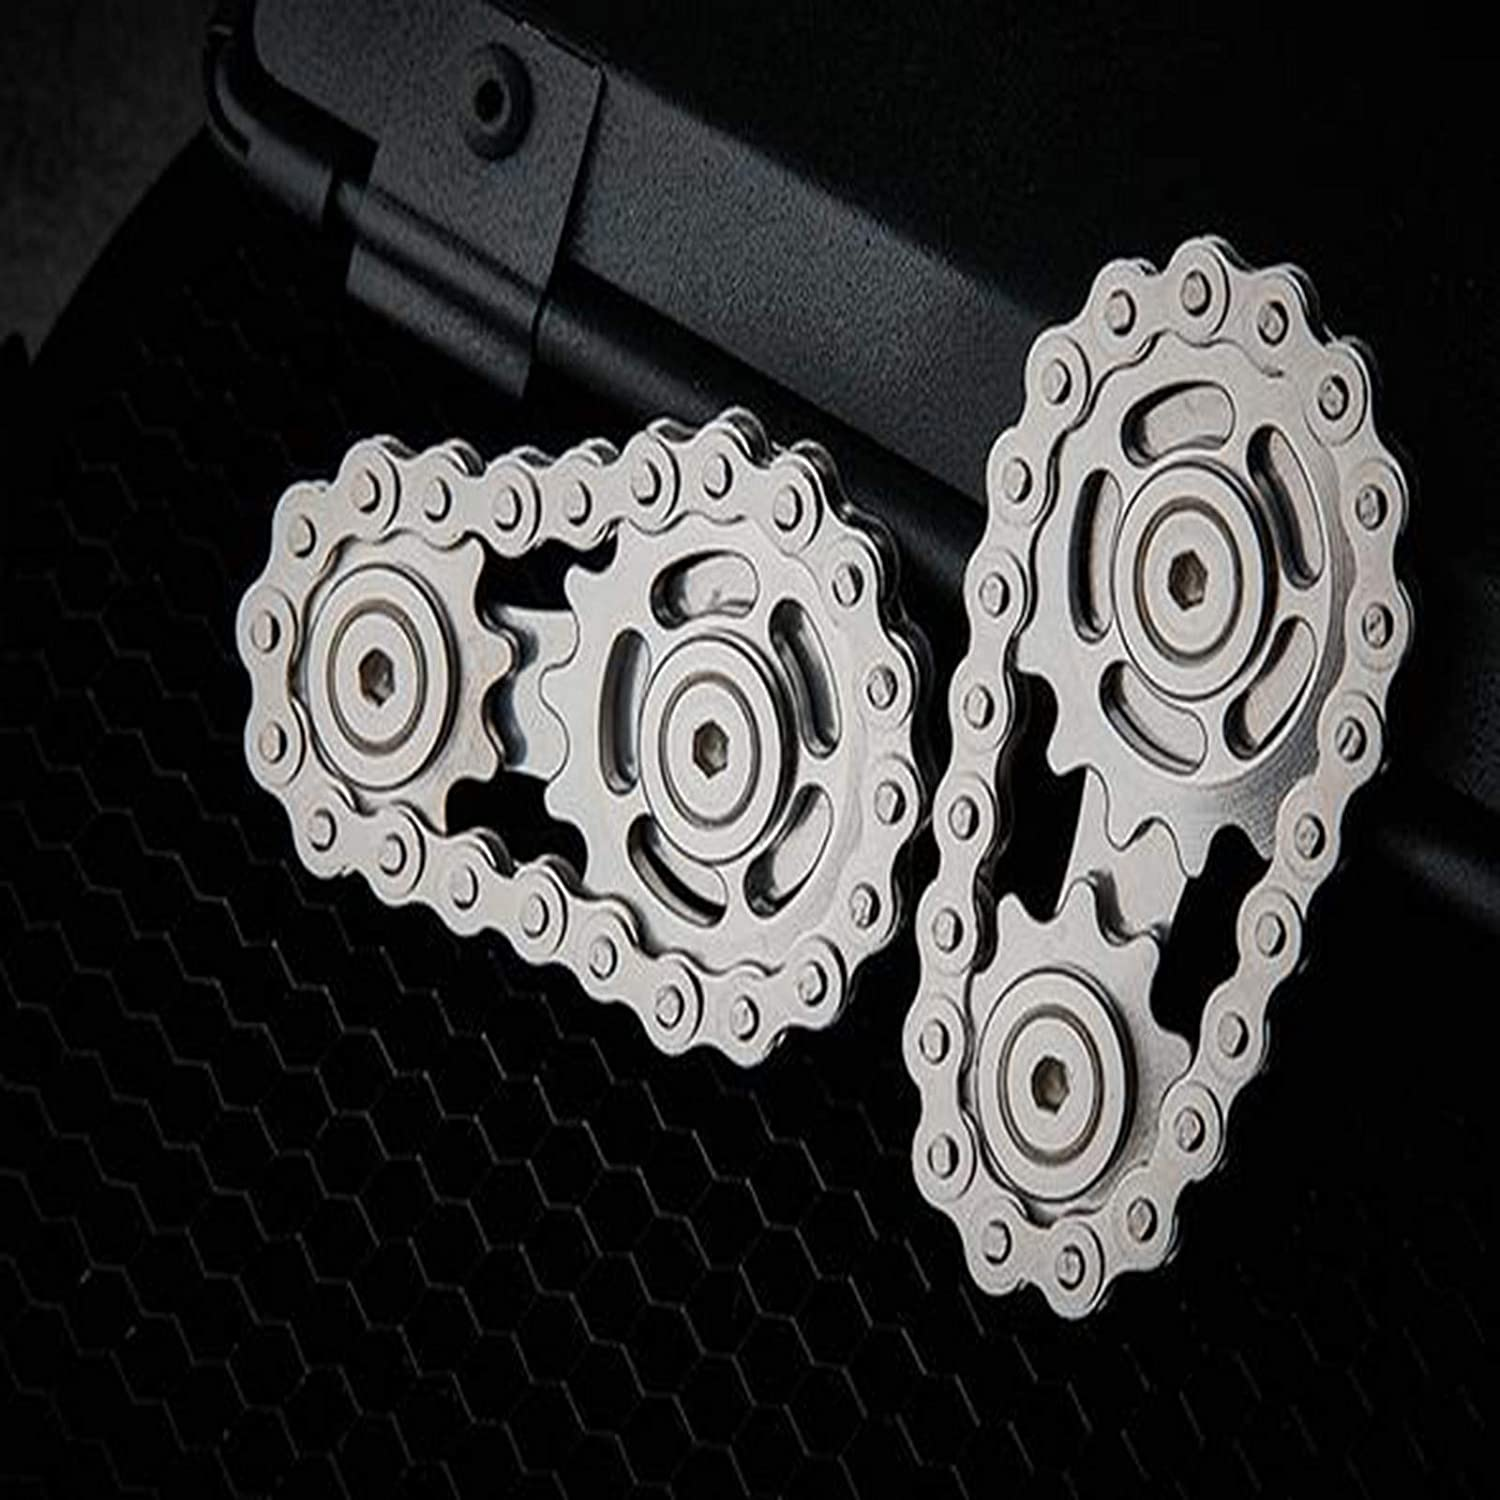 UpdateClassic Fingertip Gyro Sprocket Anti-Stress Fidget Fingertips Spinning Top Gearwheel Gyro Toys Chain Toothed Flywheel Finger Tip Decompression Toys Anxiety Relief Sprockets Toy for Kids